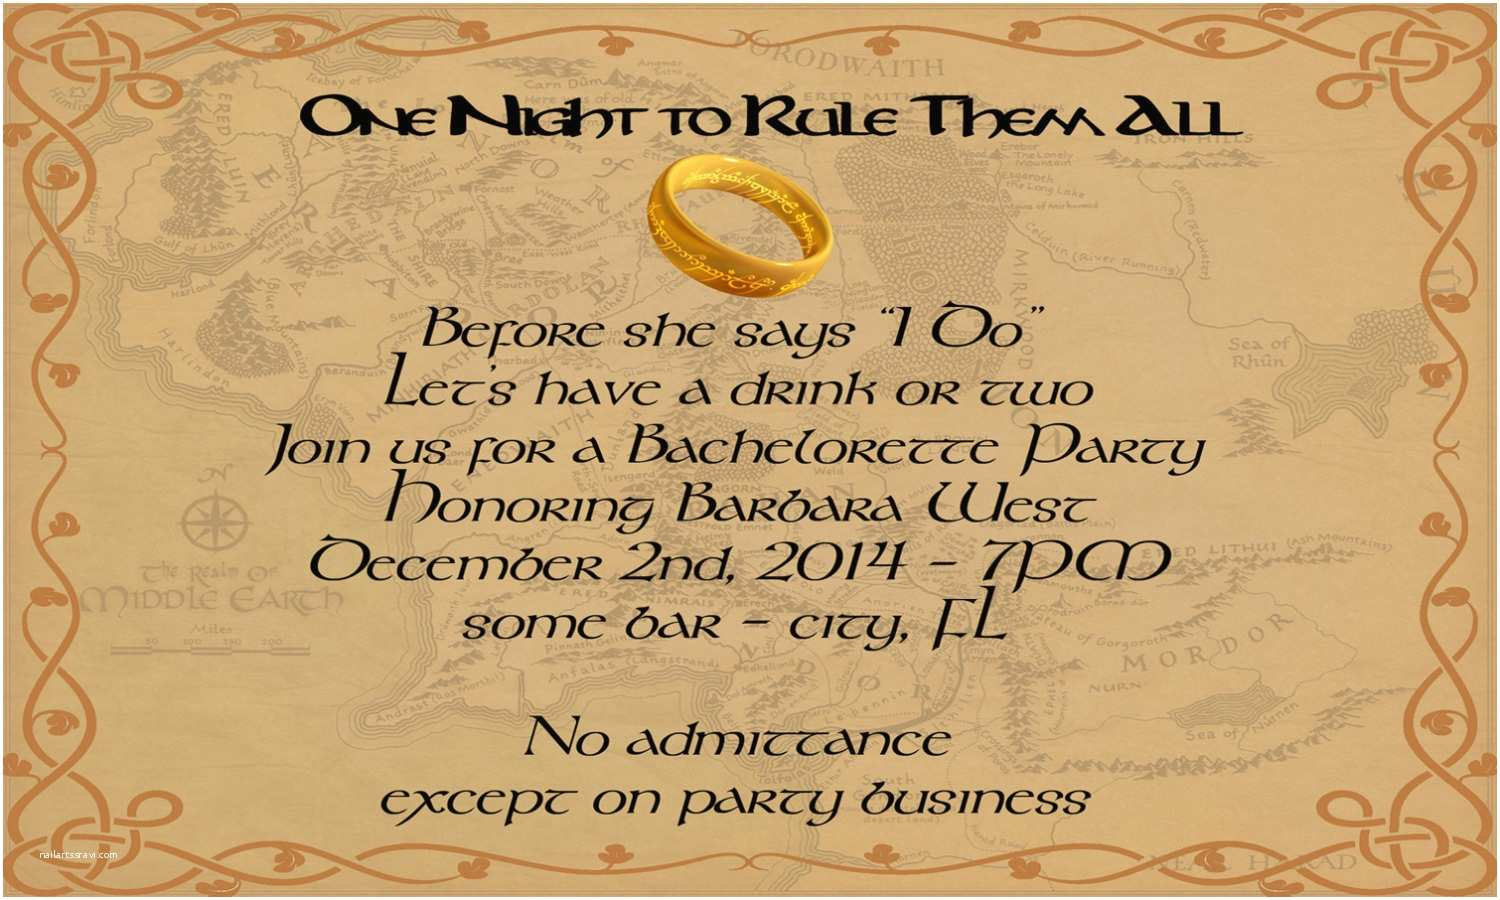 Lord Of the Rings Wedding Invitations Lord Of the Rings Wedding Invitations Part E